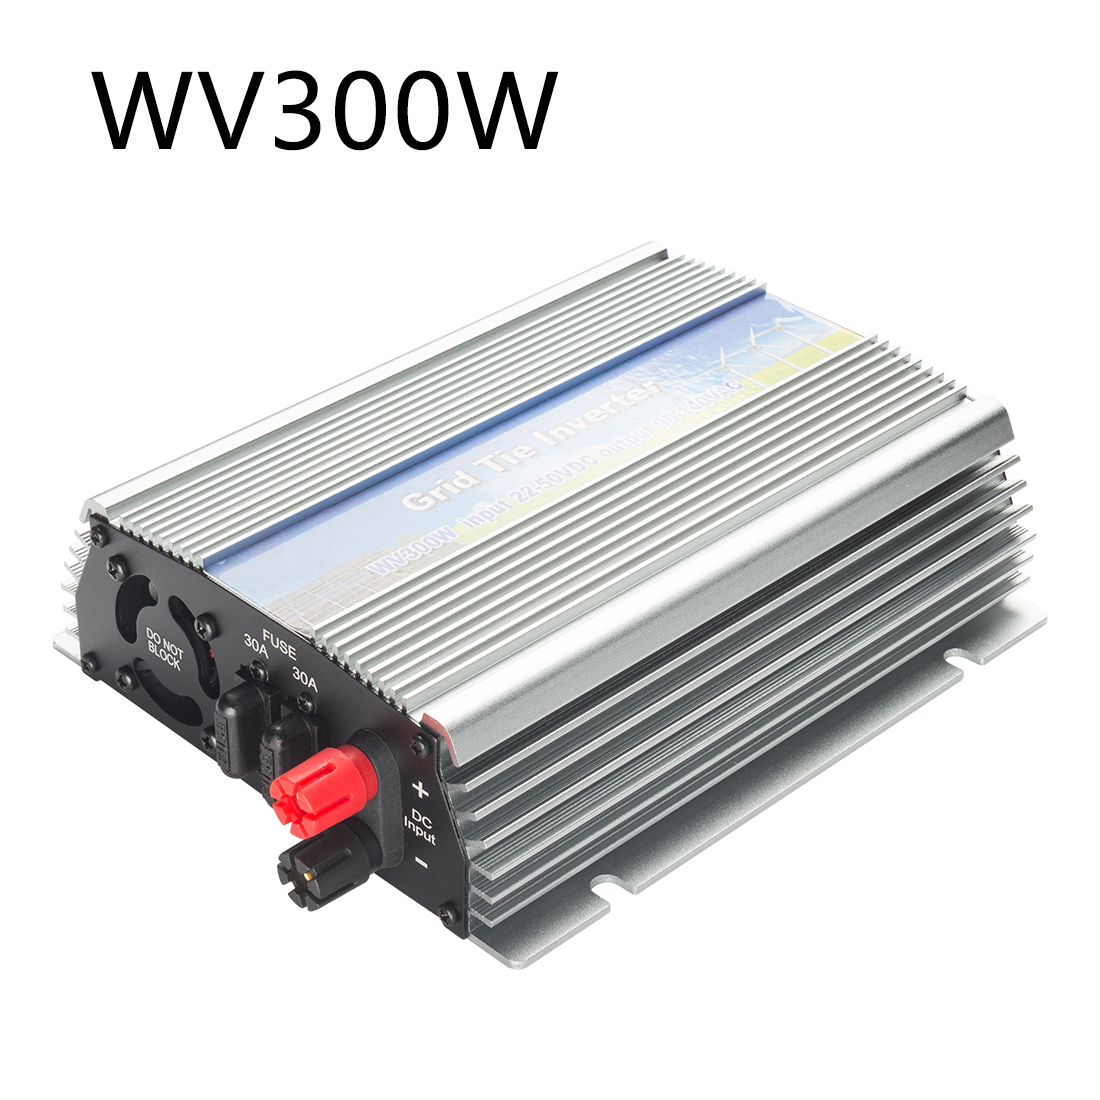 US WV 300W Grid Tie Inverter MPPT For Solar Panel Stackable Pure Sine Wave - image 7 of 7